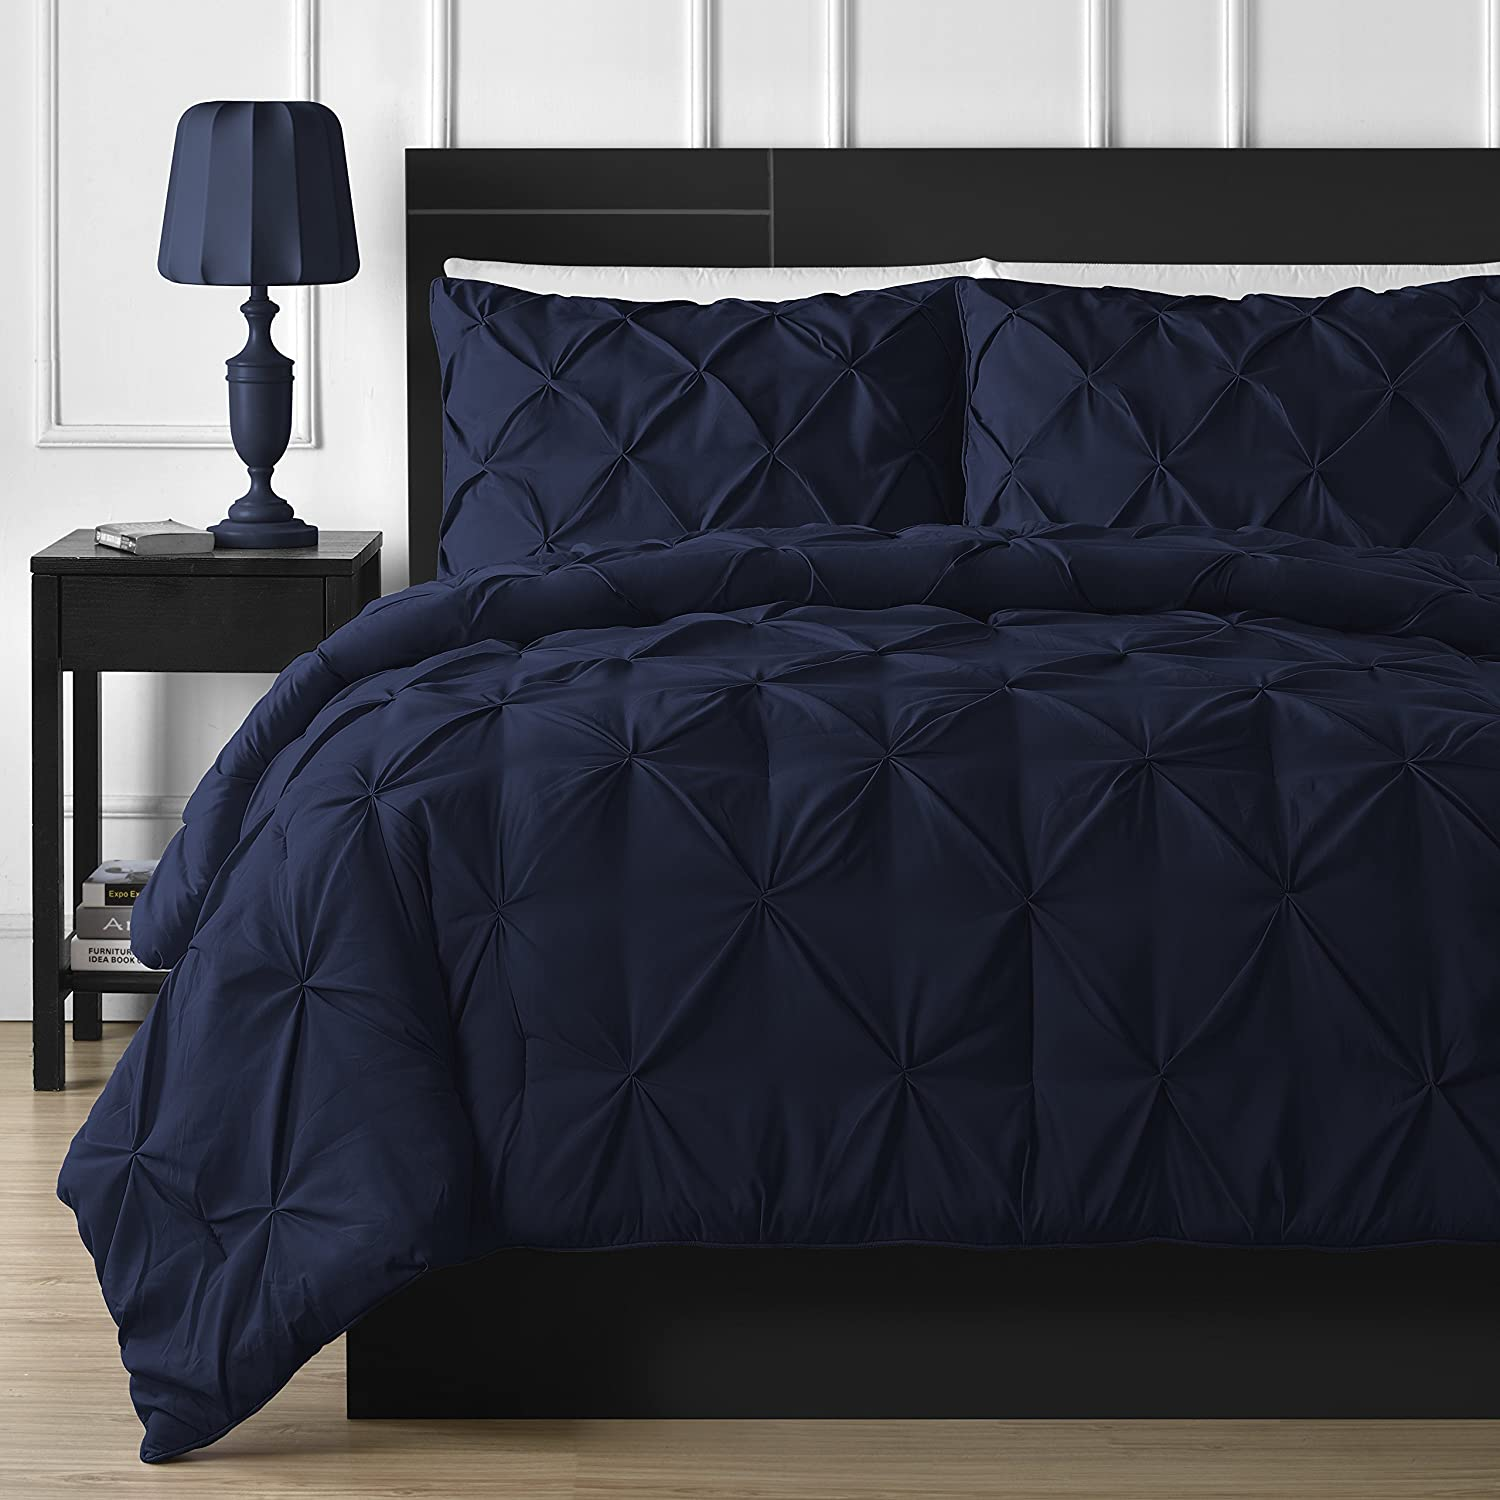 Double-Needle Durable Stitching Comfy Bedding 3-piece Pinch Pleat Comforter Set King, Navy Blue